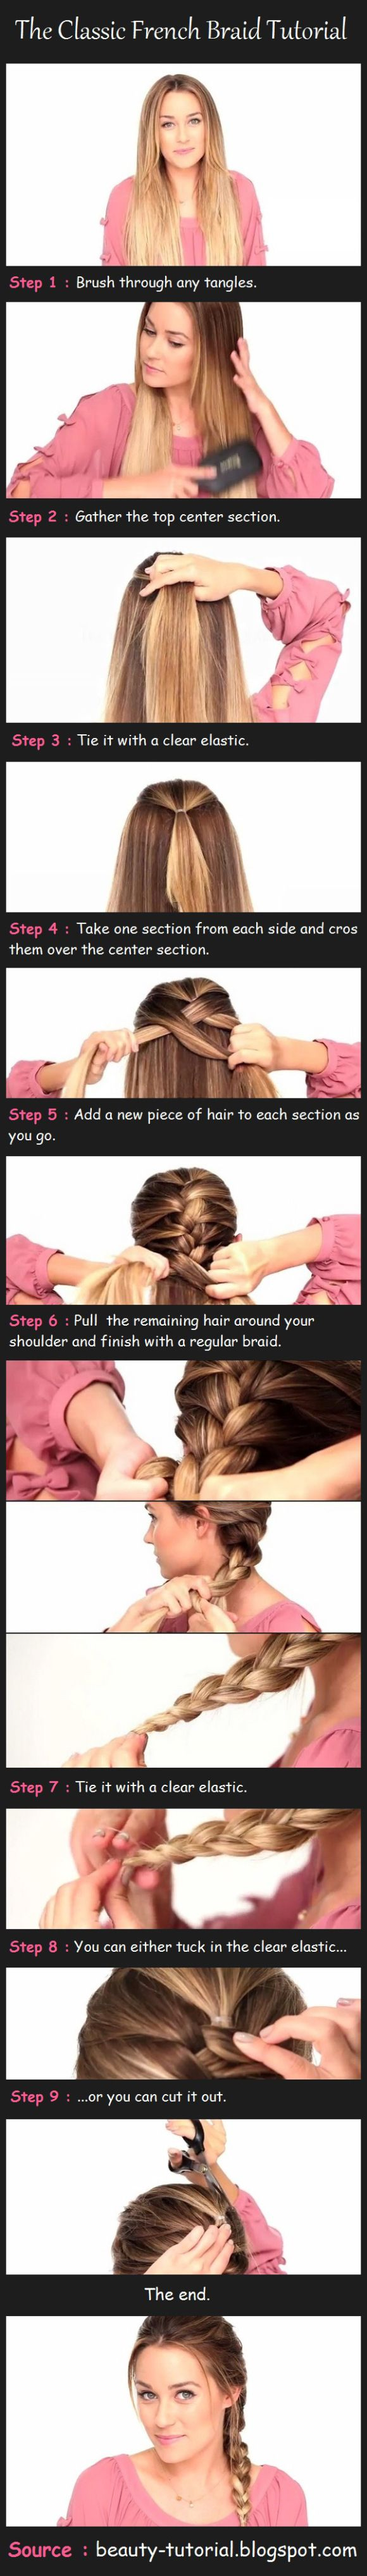 The Classic French Braid Tutorial.I'm probably the only girl who can't french braid